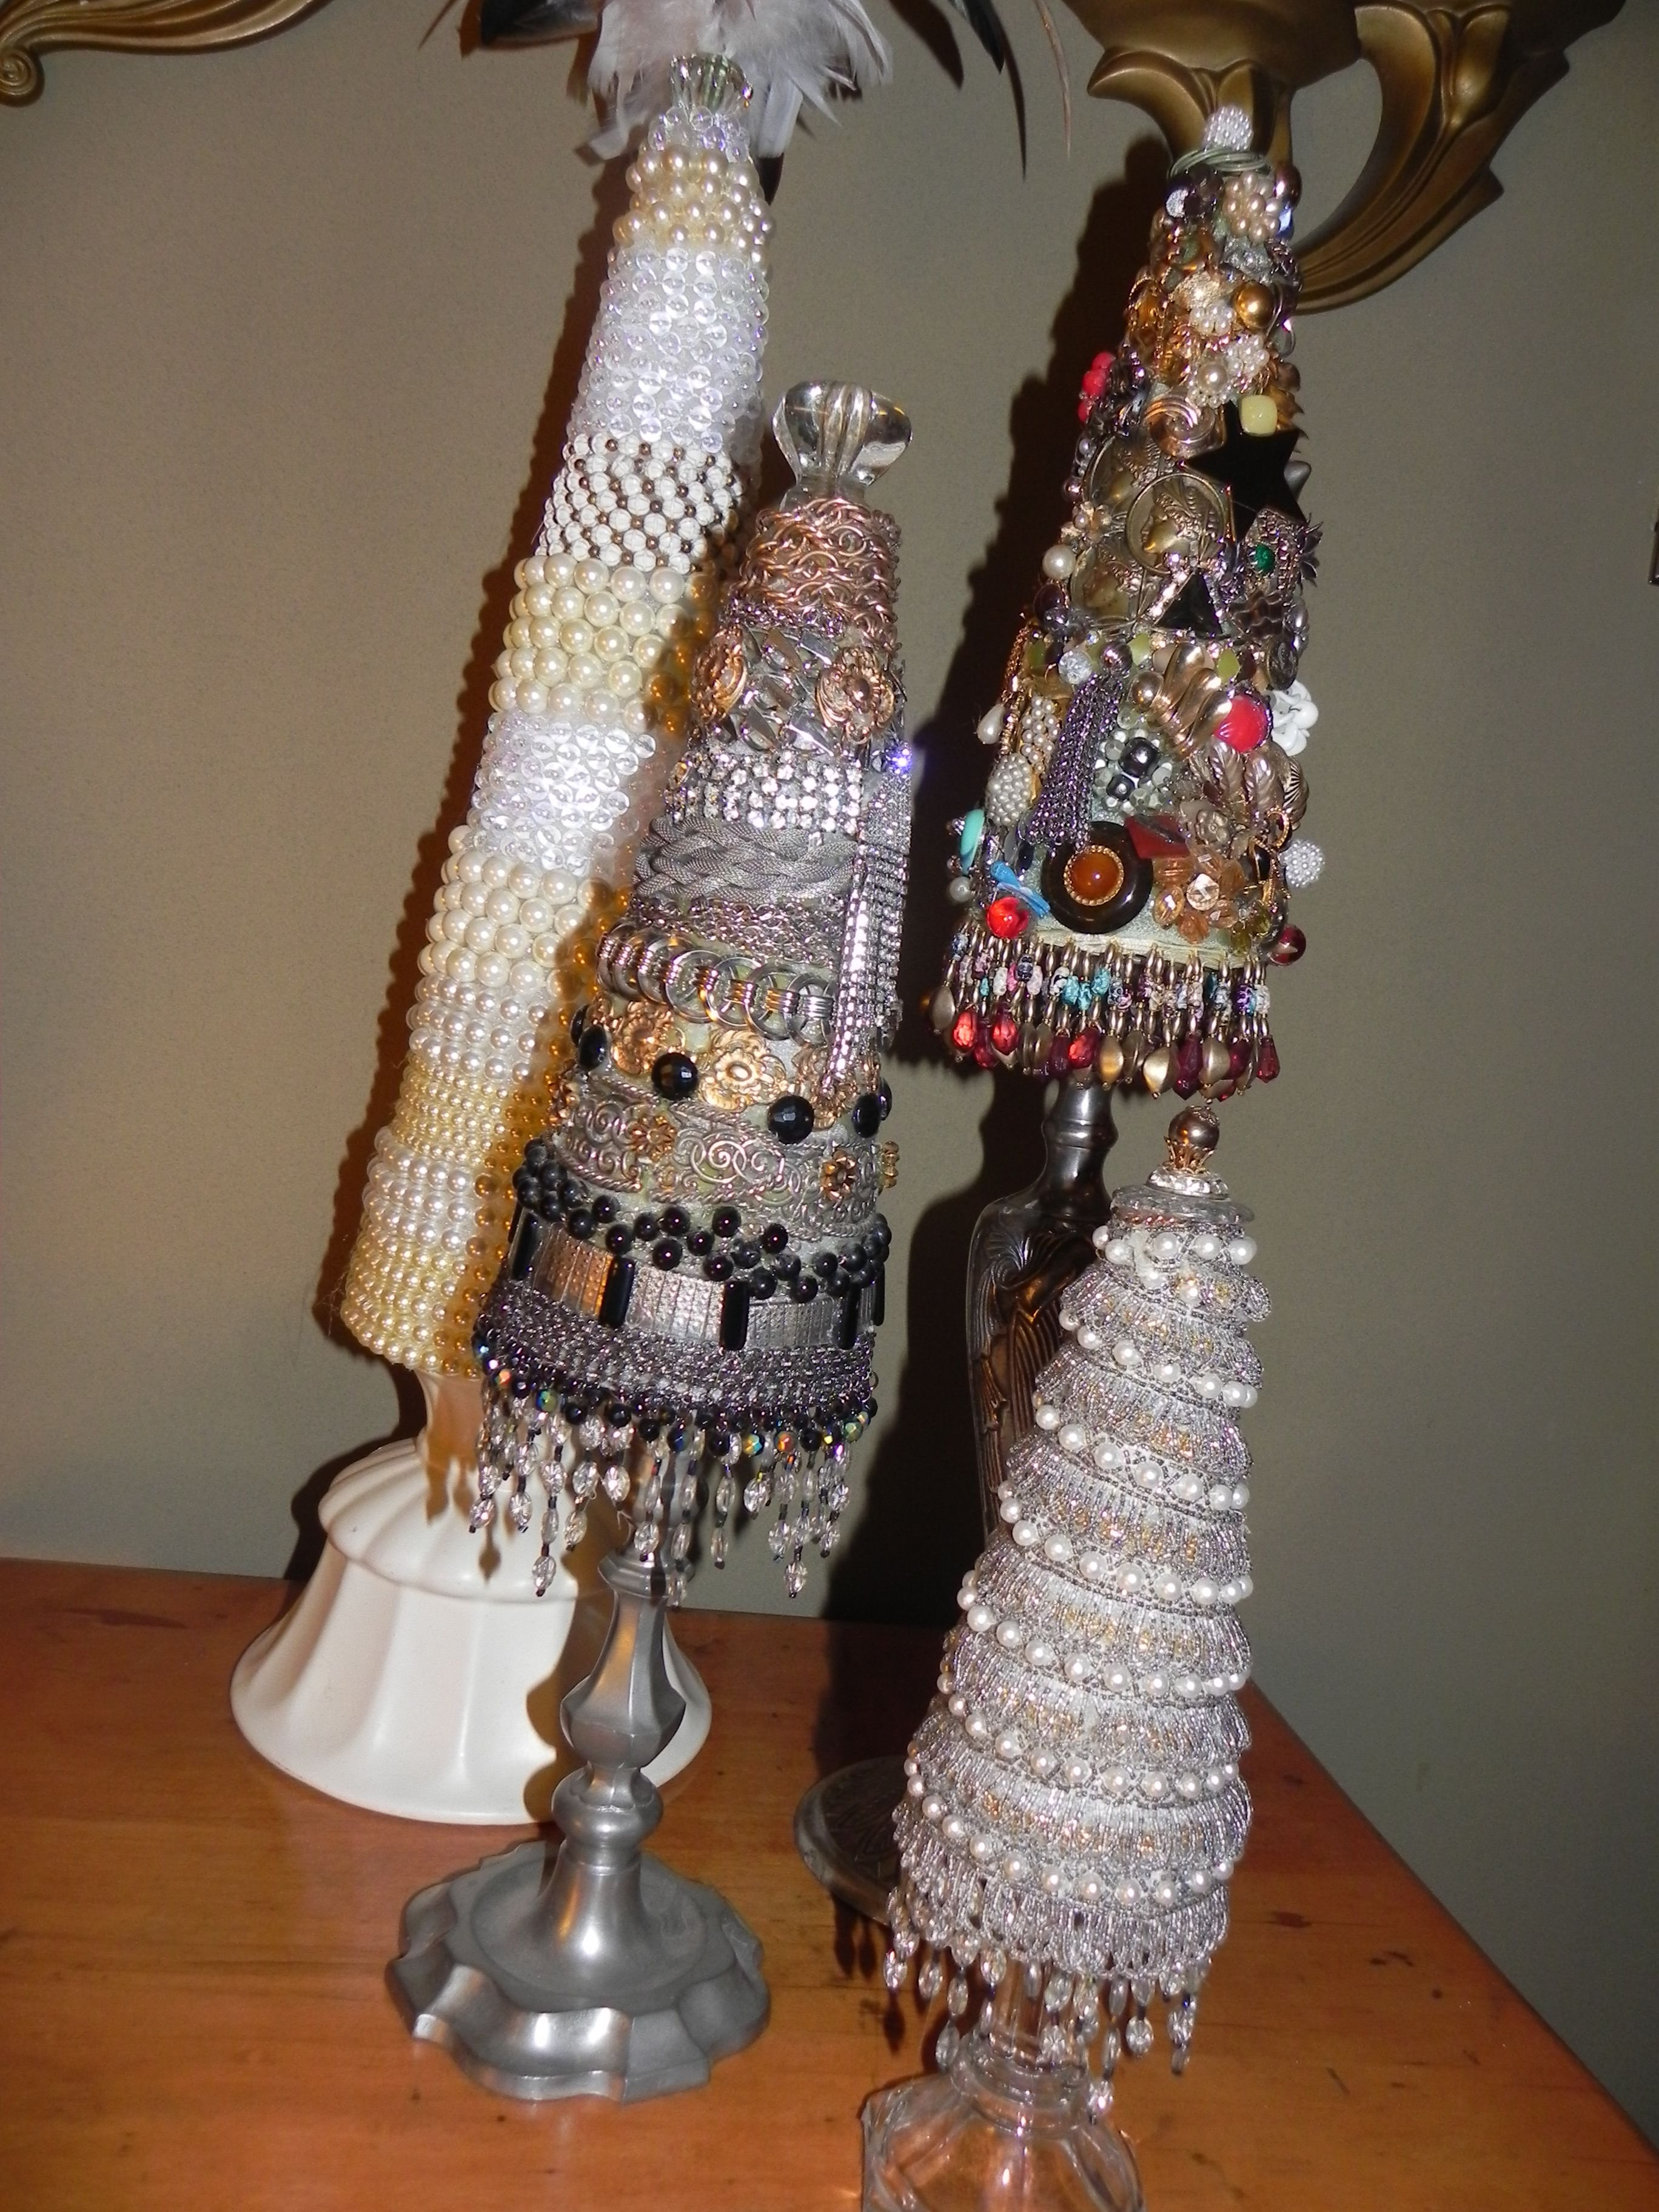 Christmas Trees Made Of Pearls Vintage Costume Jewelry And Necklaces The Bases Are Old C Jewelry Christmas Tree Jeweled Christmas Trees Christmas Tree Crafts